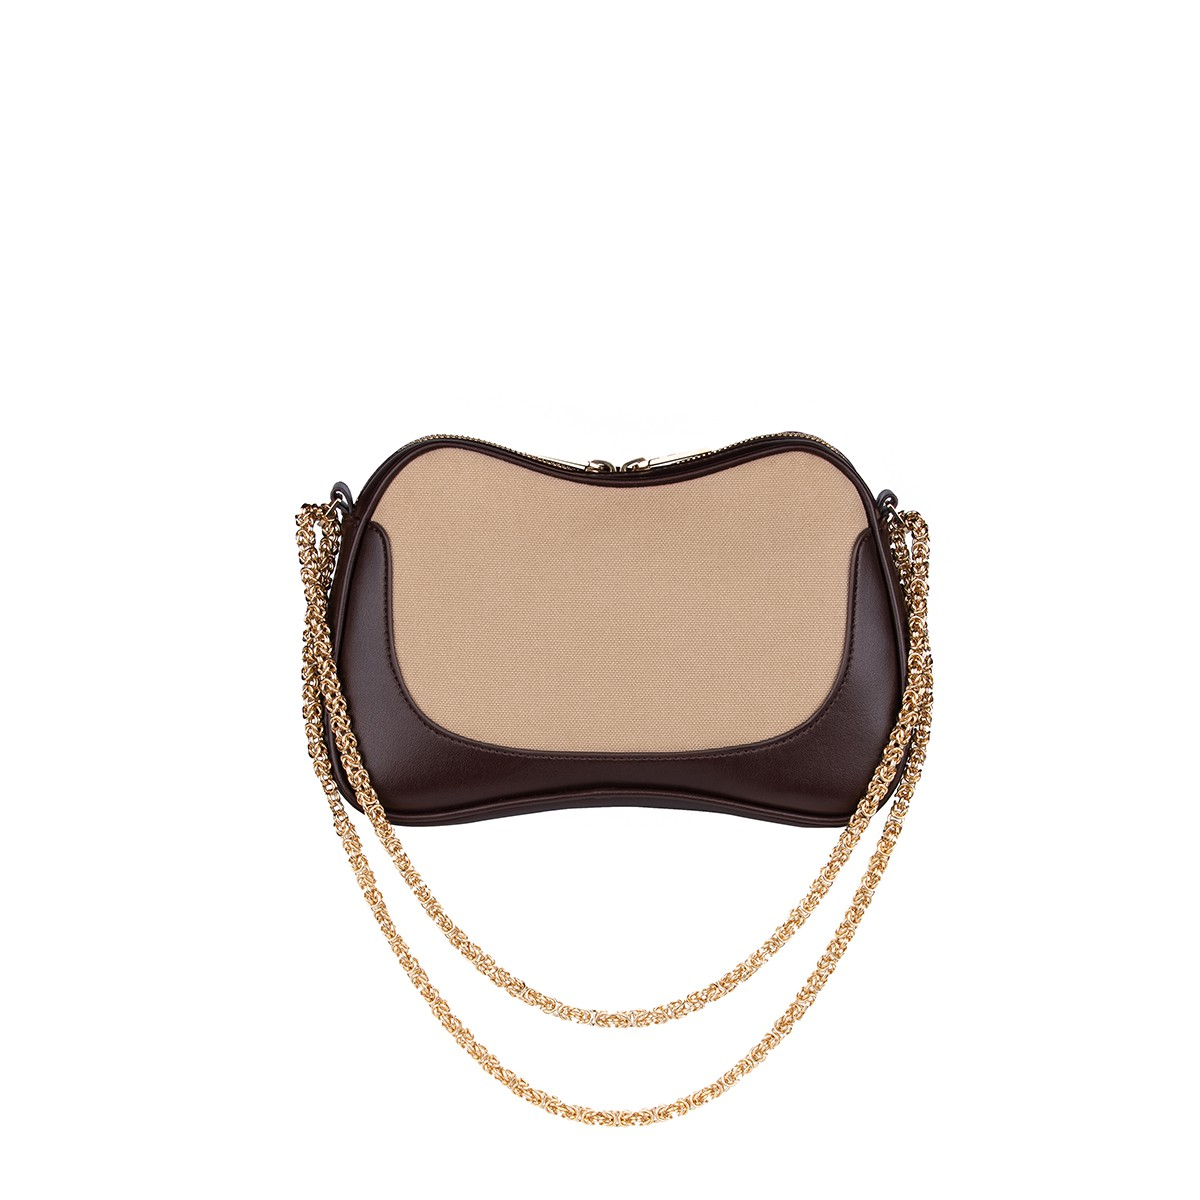 Doina in Brown and Beige6